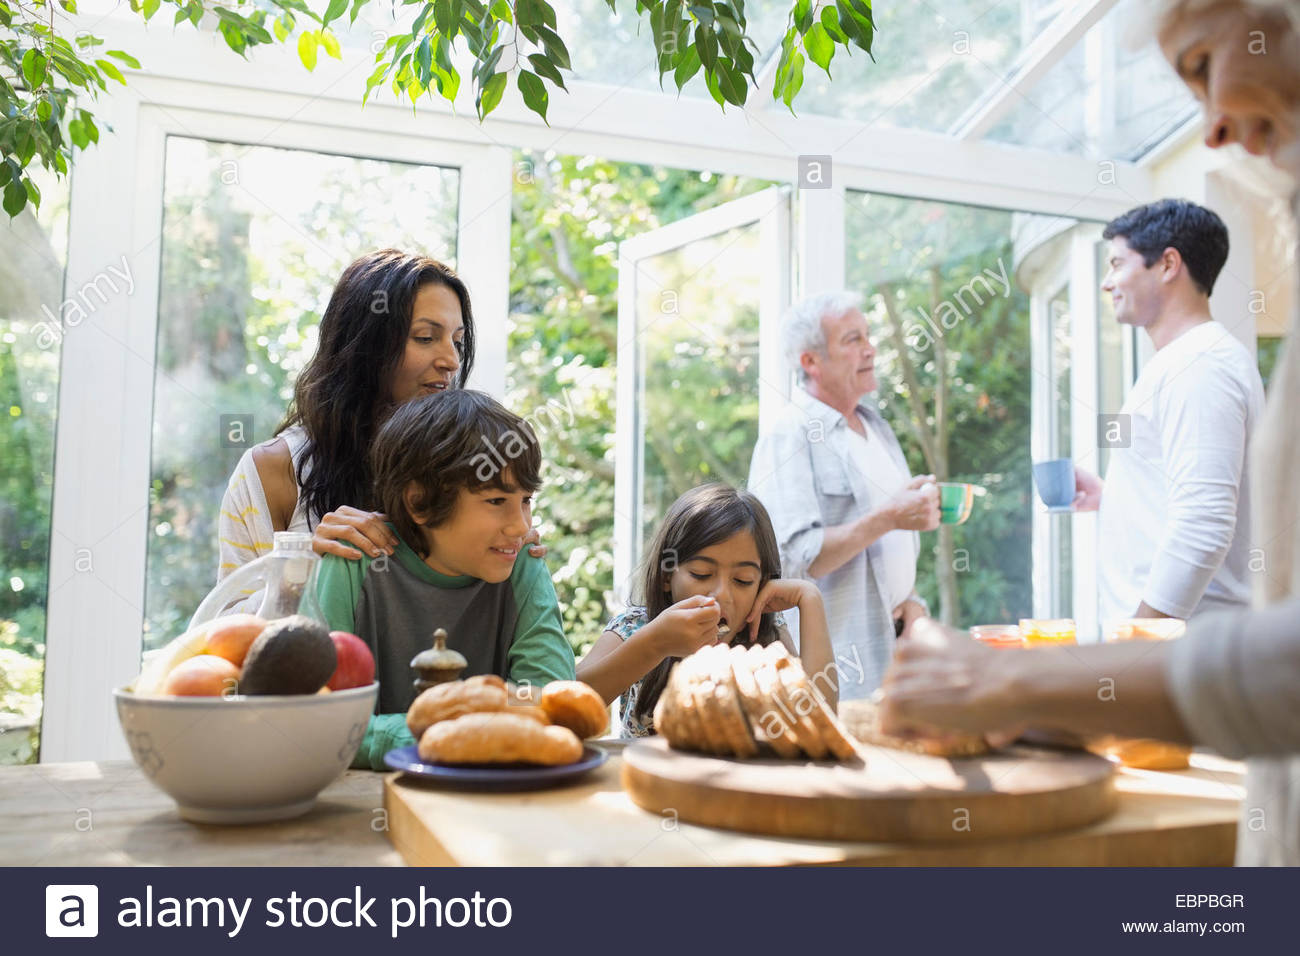 Multi-generation family eating in kitchen - Stock Image